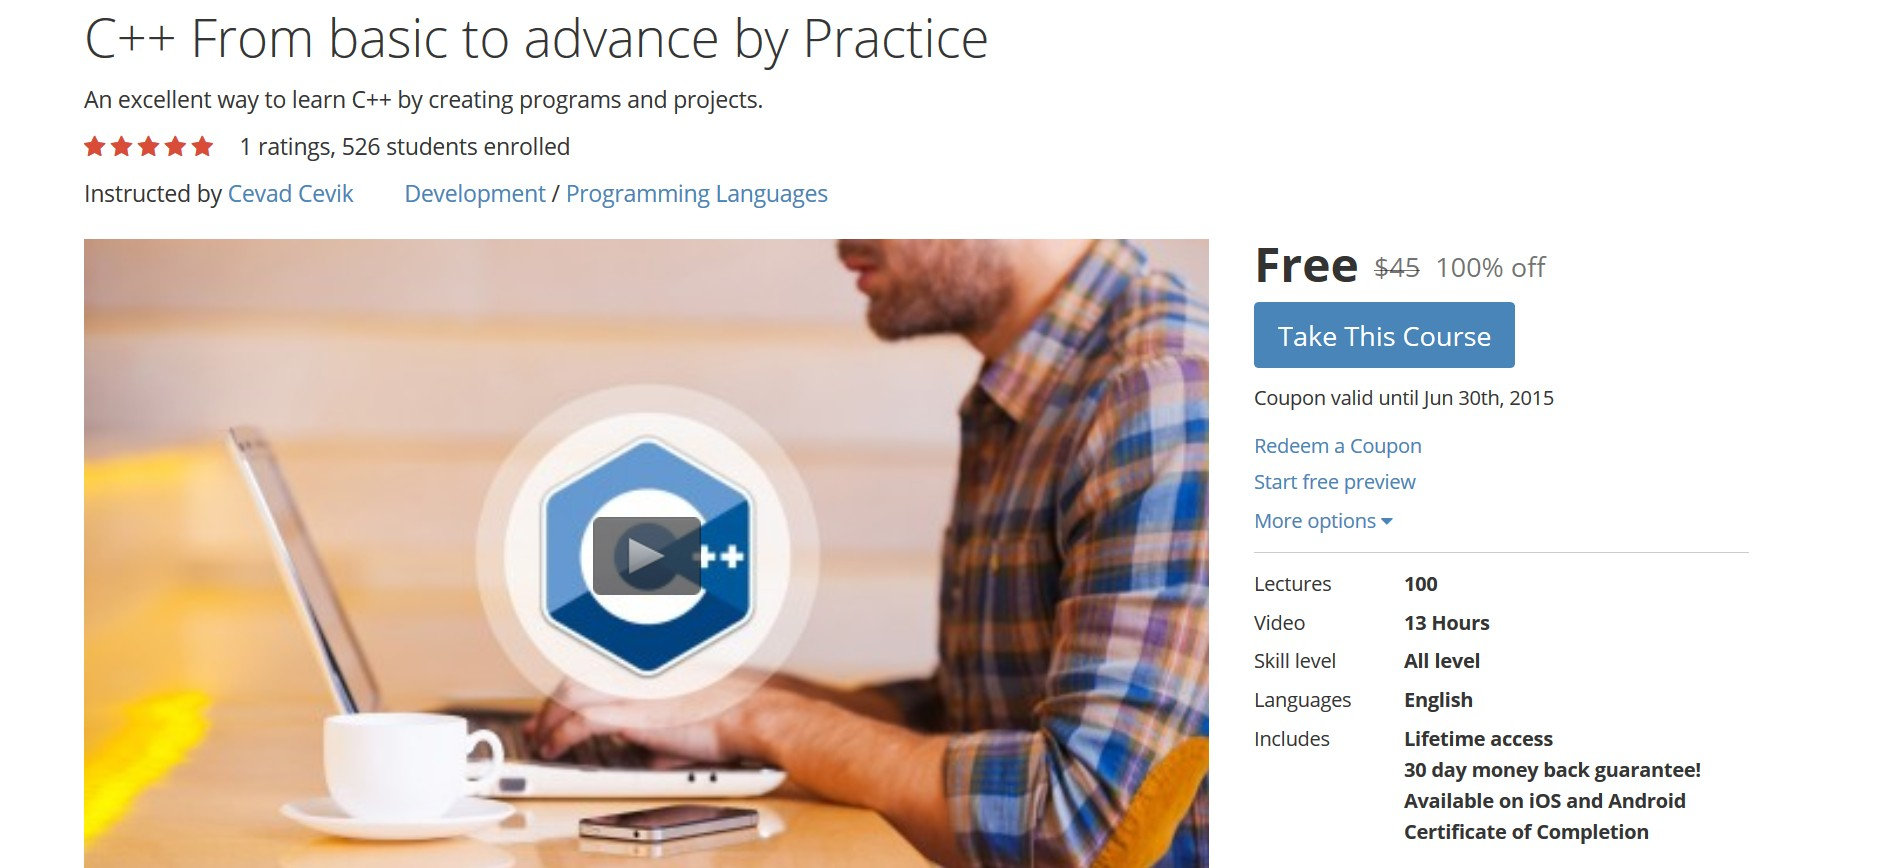 Free Udemy Course on C++ From basic to advance by Practice